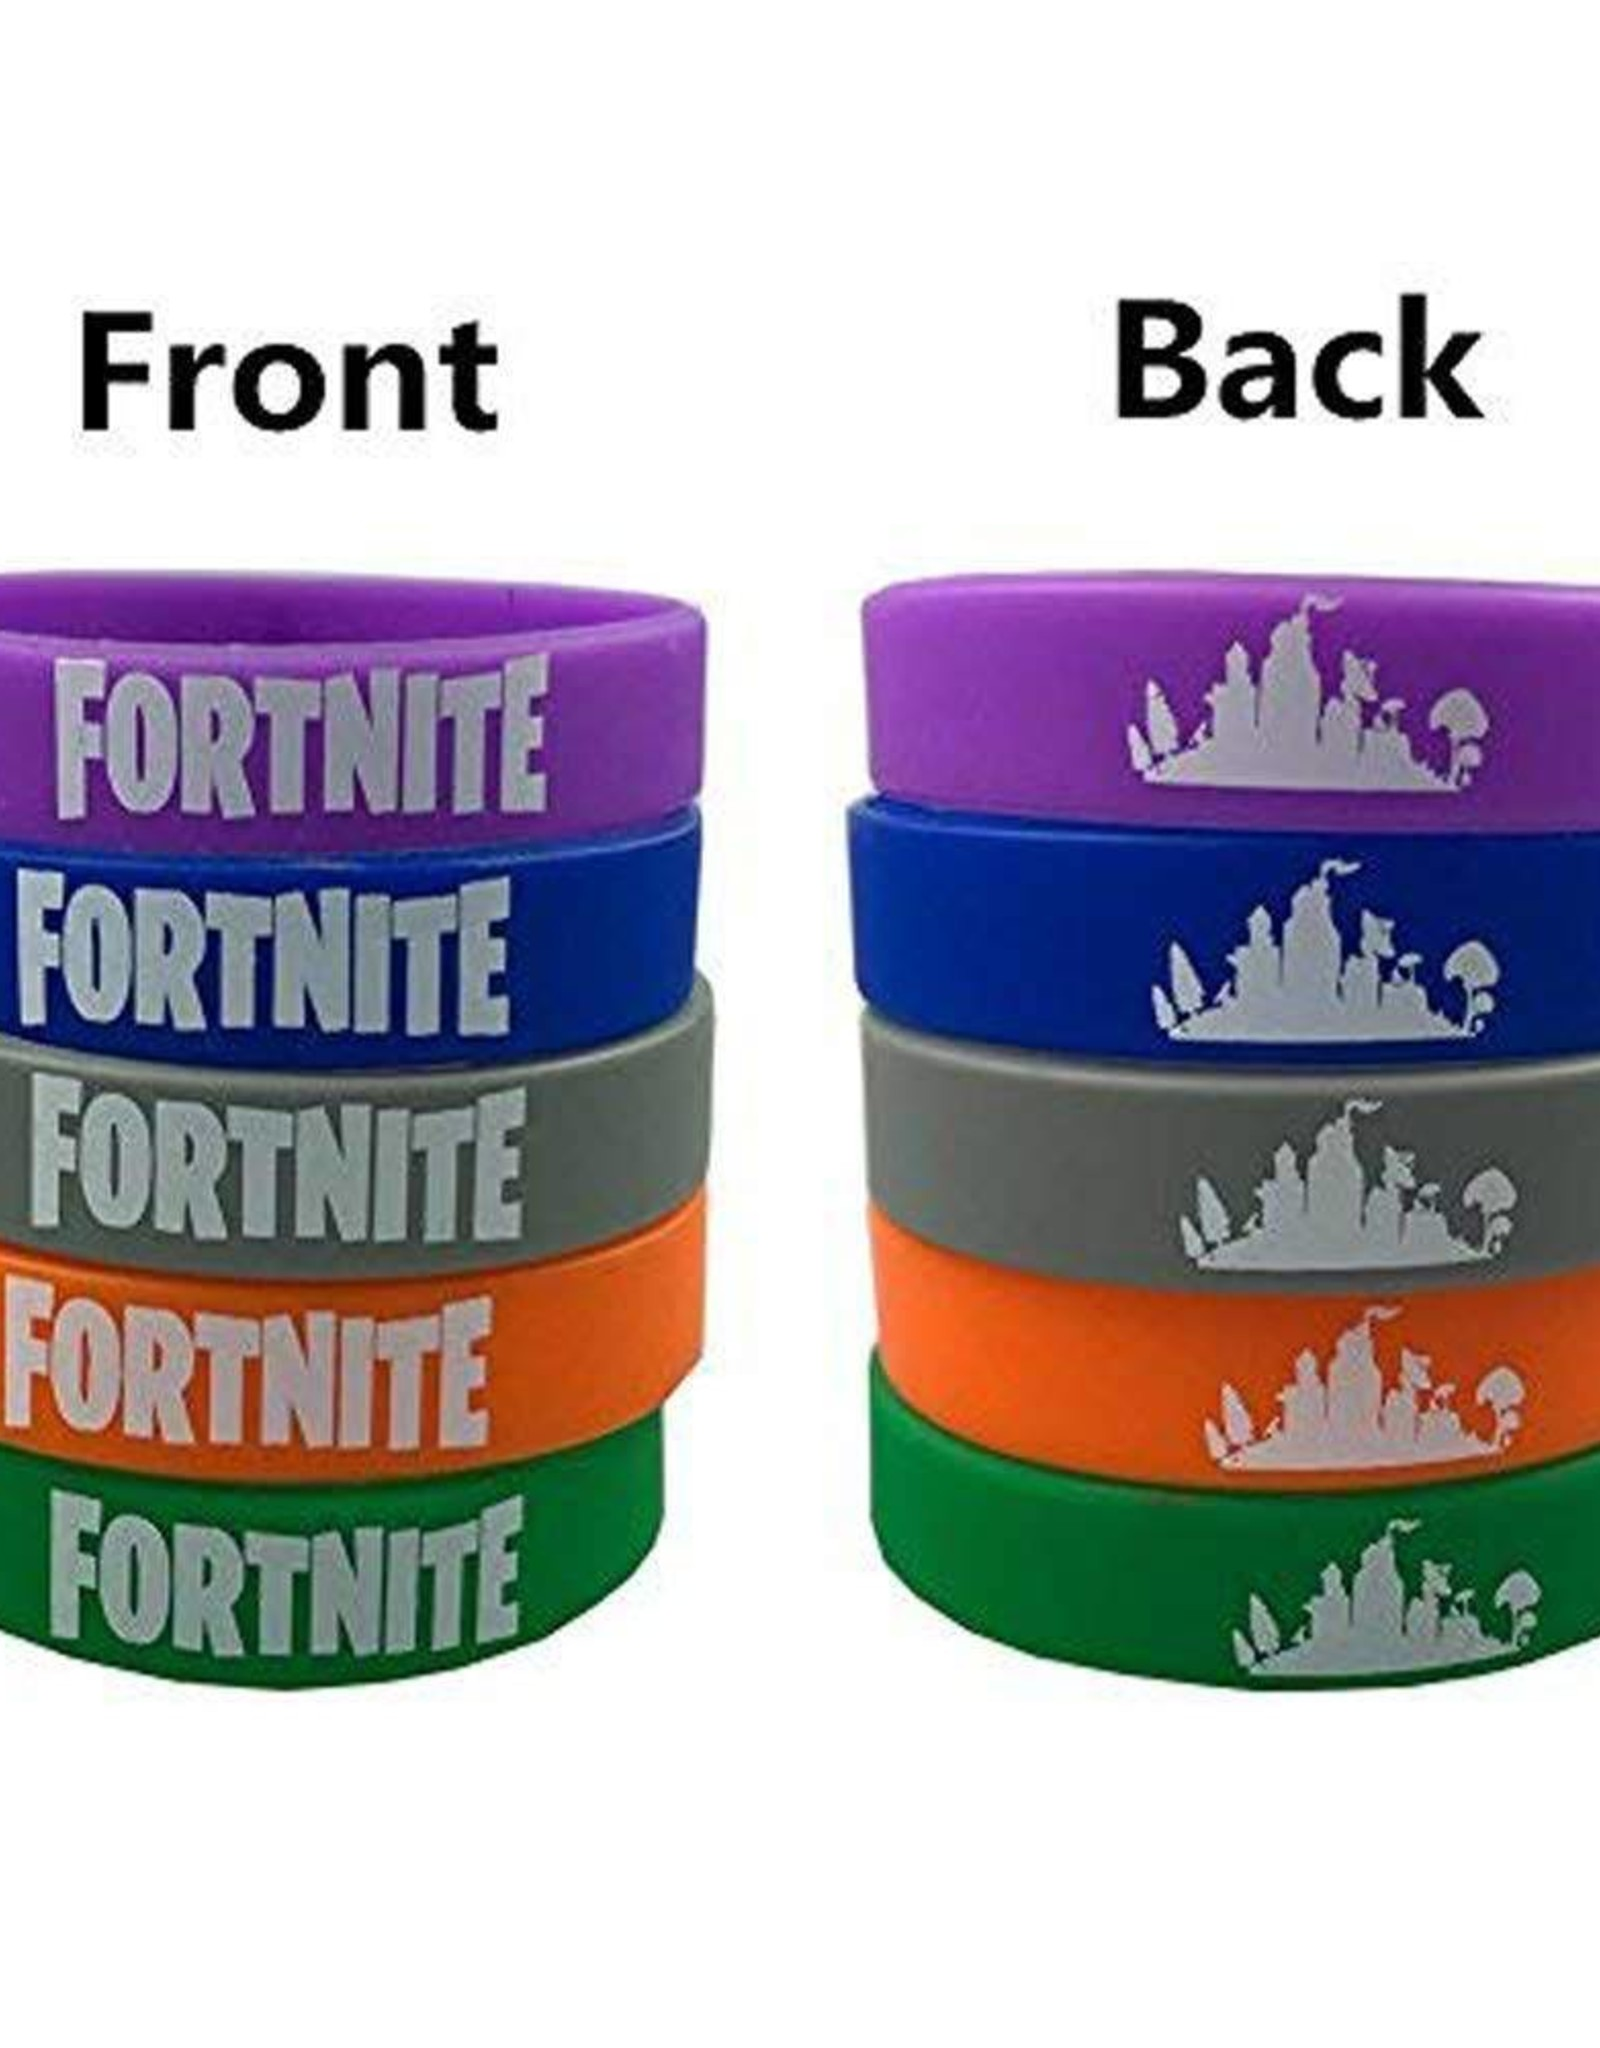 $5 Wrist Band Bracelet (1 PC) (Fortnite / Game / Motivational)